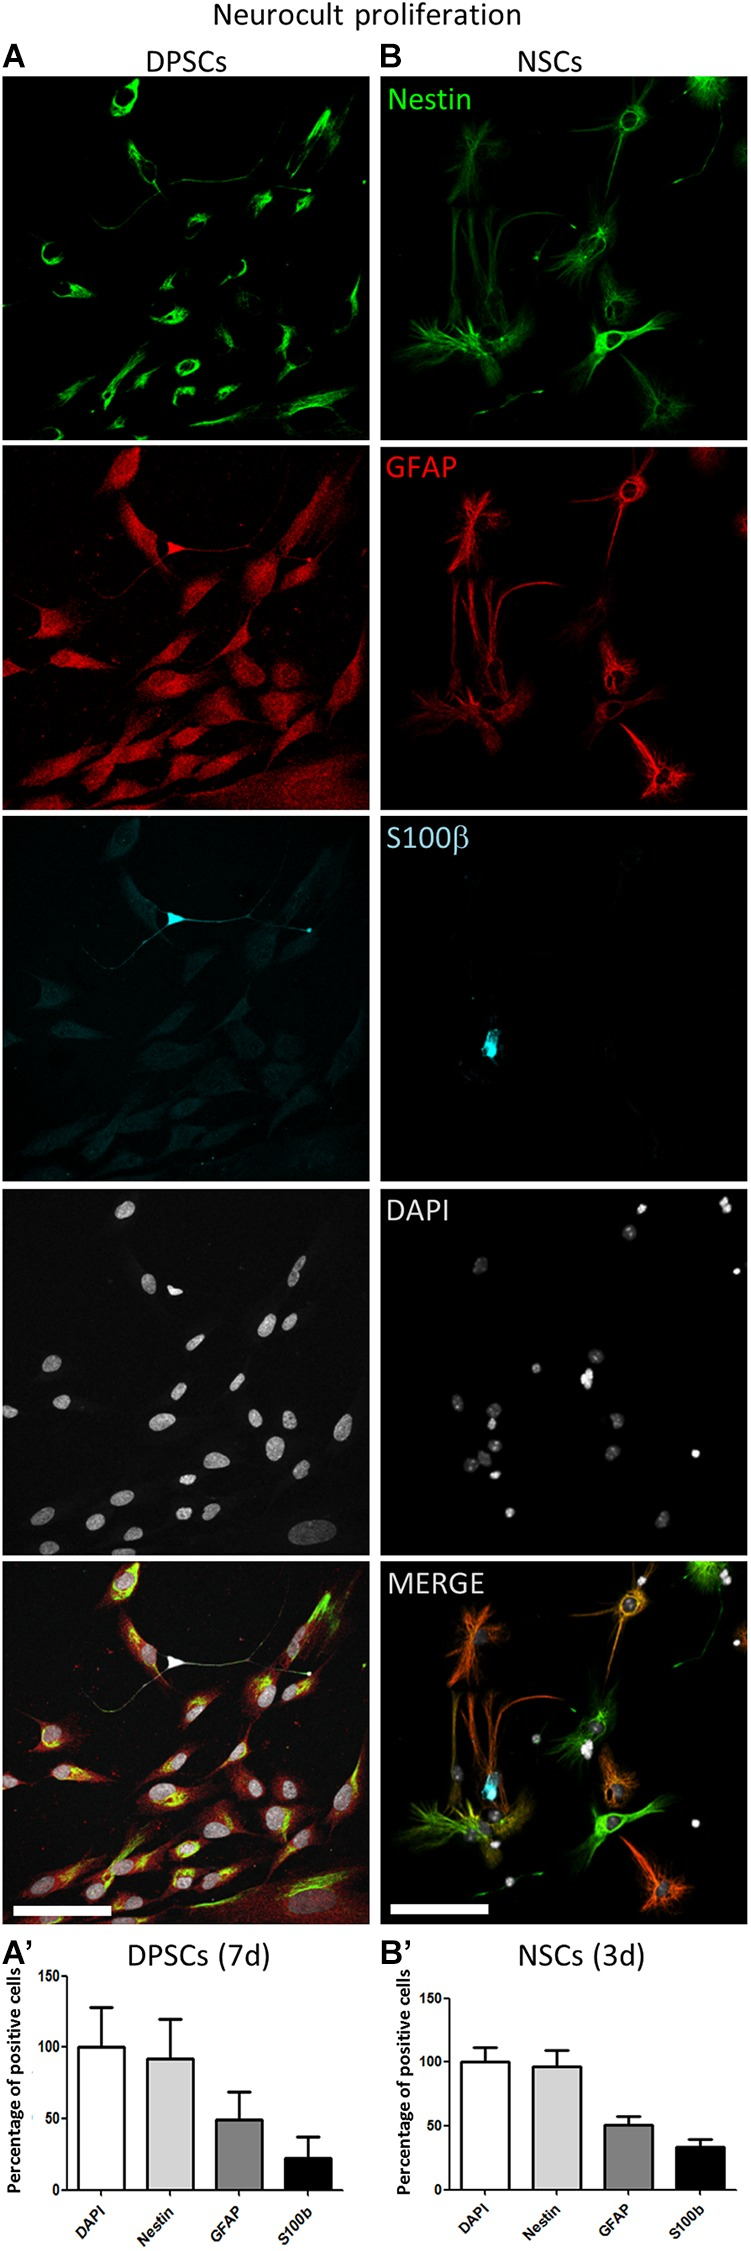 Human DPSCs grown in Neurocult proliferation share neural stem/progenitor markers with murine NSCs. (A,A') Human DPSCs were allowed to grow for 7 days in laminin-coated wells in the presence of Neurocult proliferation media are <t>Nestin</t> positive and also express astroglial markers <t>GFAP</t> and S100ß ( n = 230). (B,B') Murine NSCs grown for 3 days (to avoid confluency) in the same culture conditions also express these astroglial markers in similar proportion ( n = 242). Mean ± SEM of three independent experiments. Scale bar 75 μm.